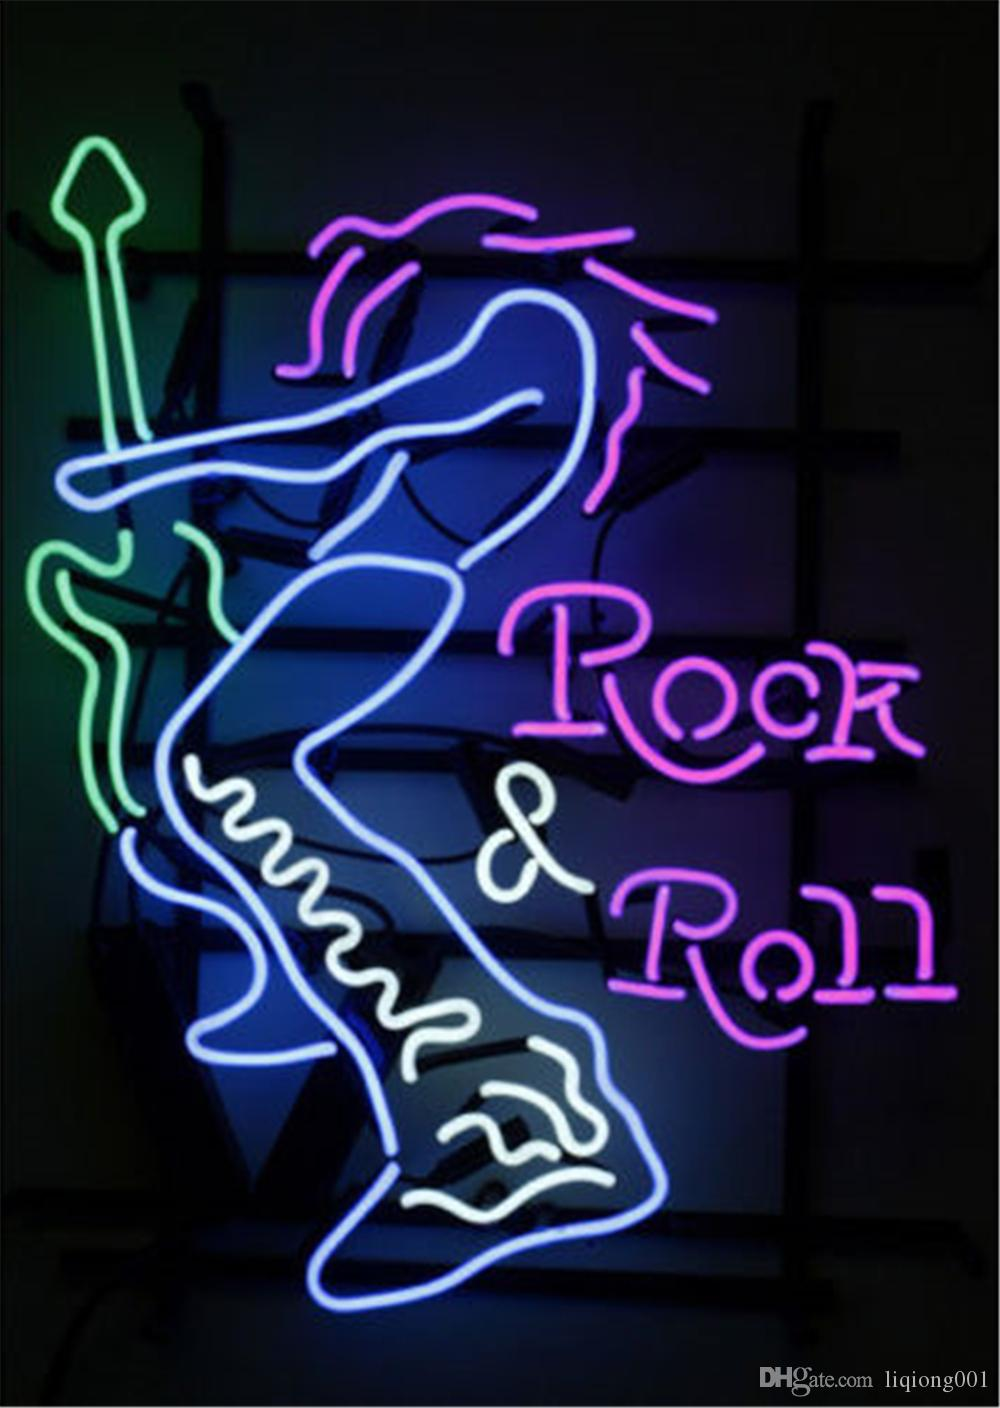 New Star Neon Sign Factory 19X15 Inches Real Glass Neon Sign Light for Beer Bar Pub Garage Room Rock'N'Roll.